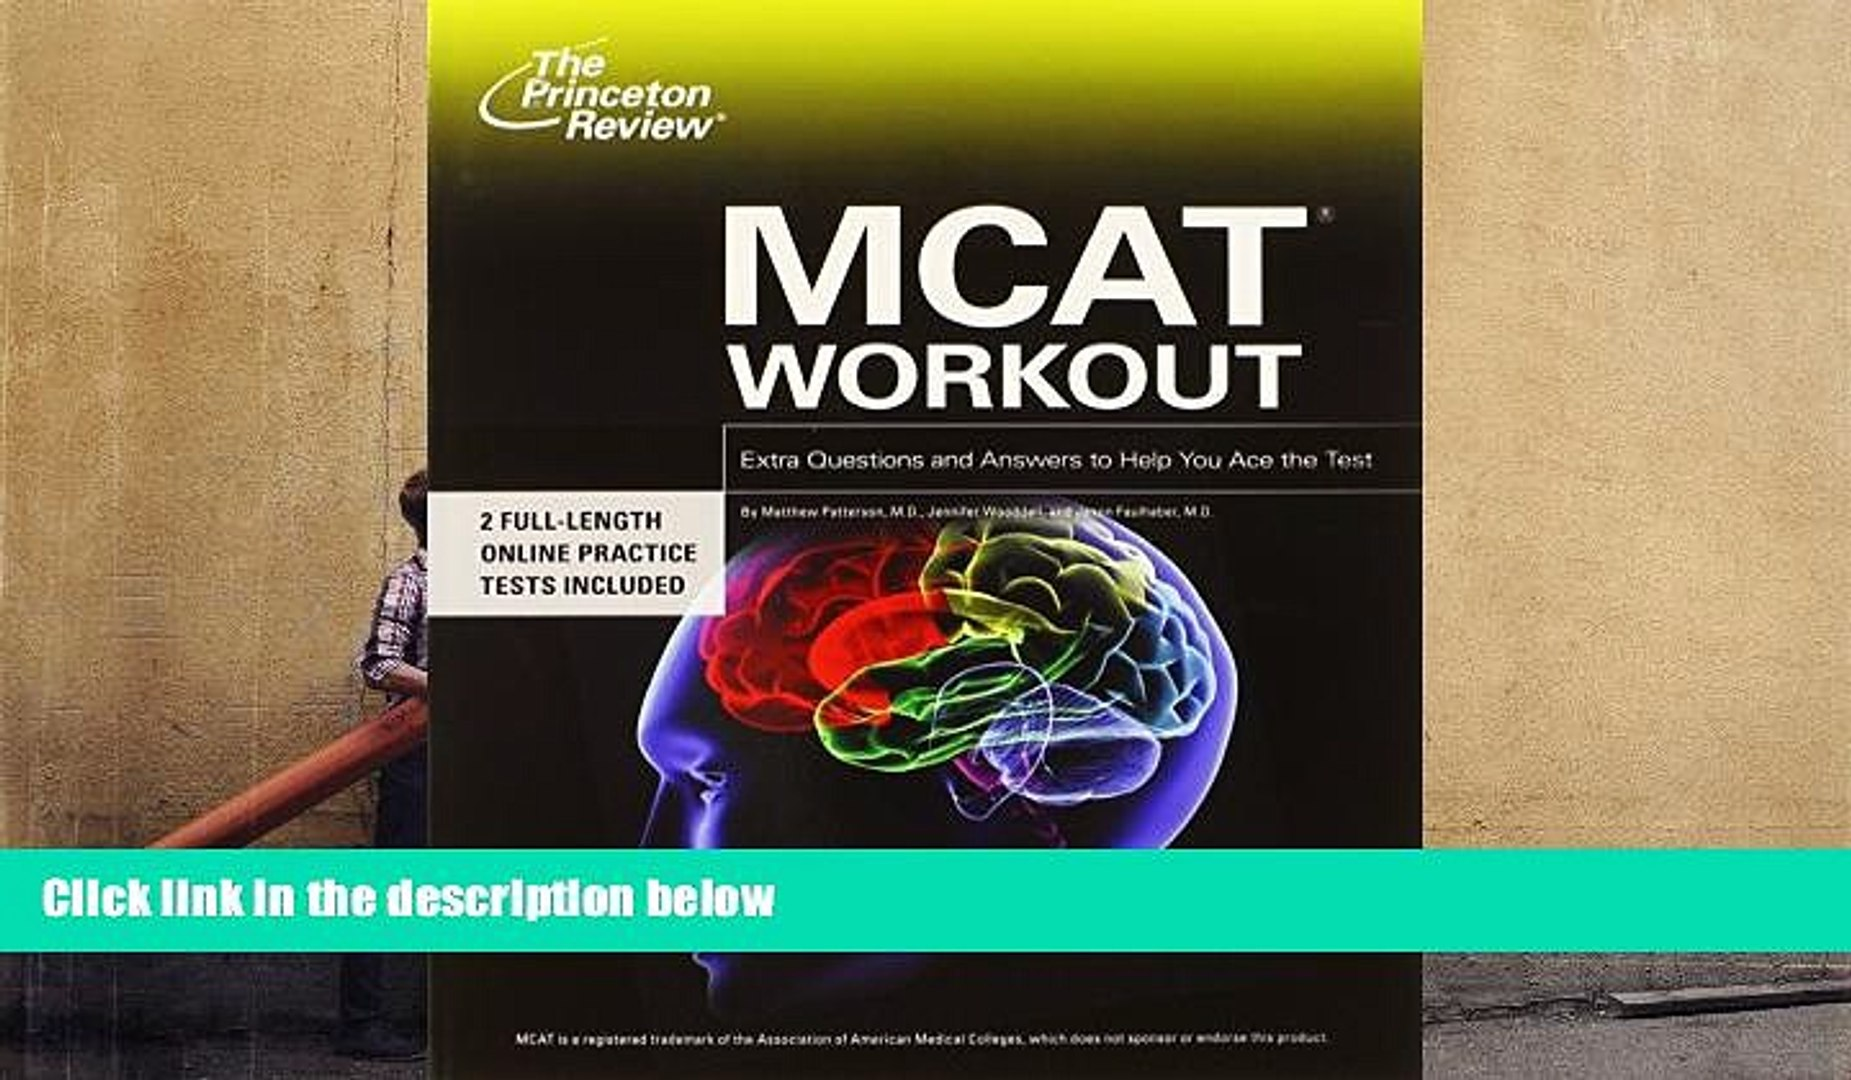 PDF [DOWNLOAD] MCAT Workout Princeton Review FOR IPAD